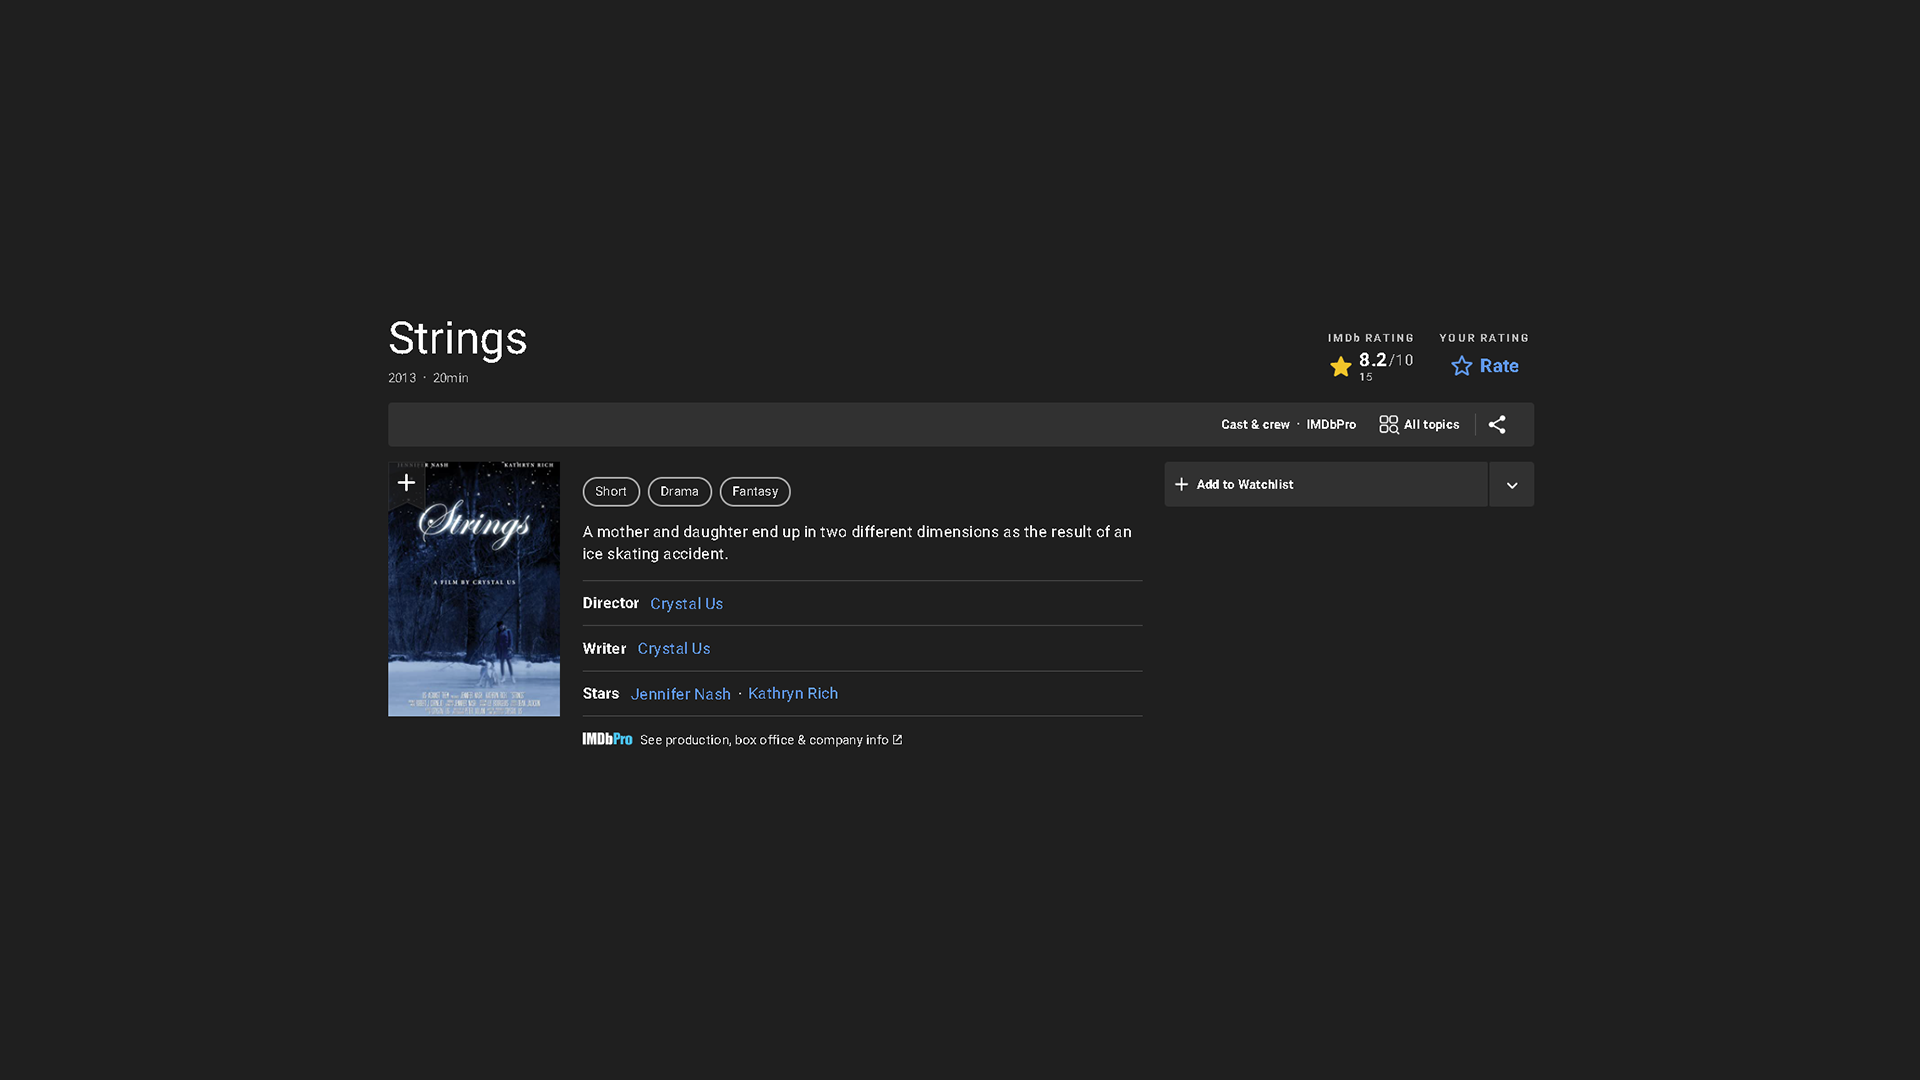 Strings on IMDB with black background